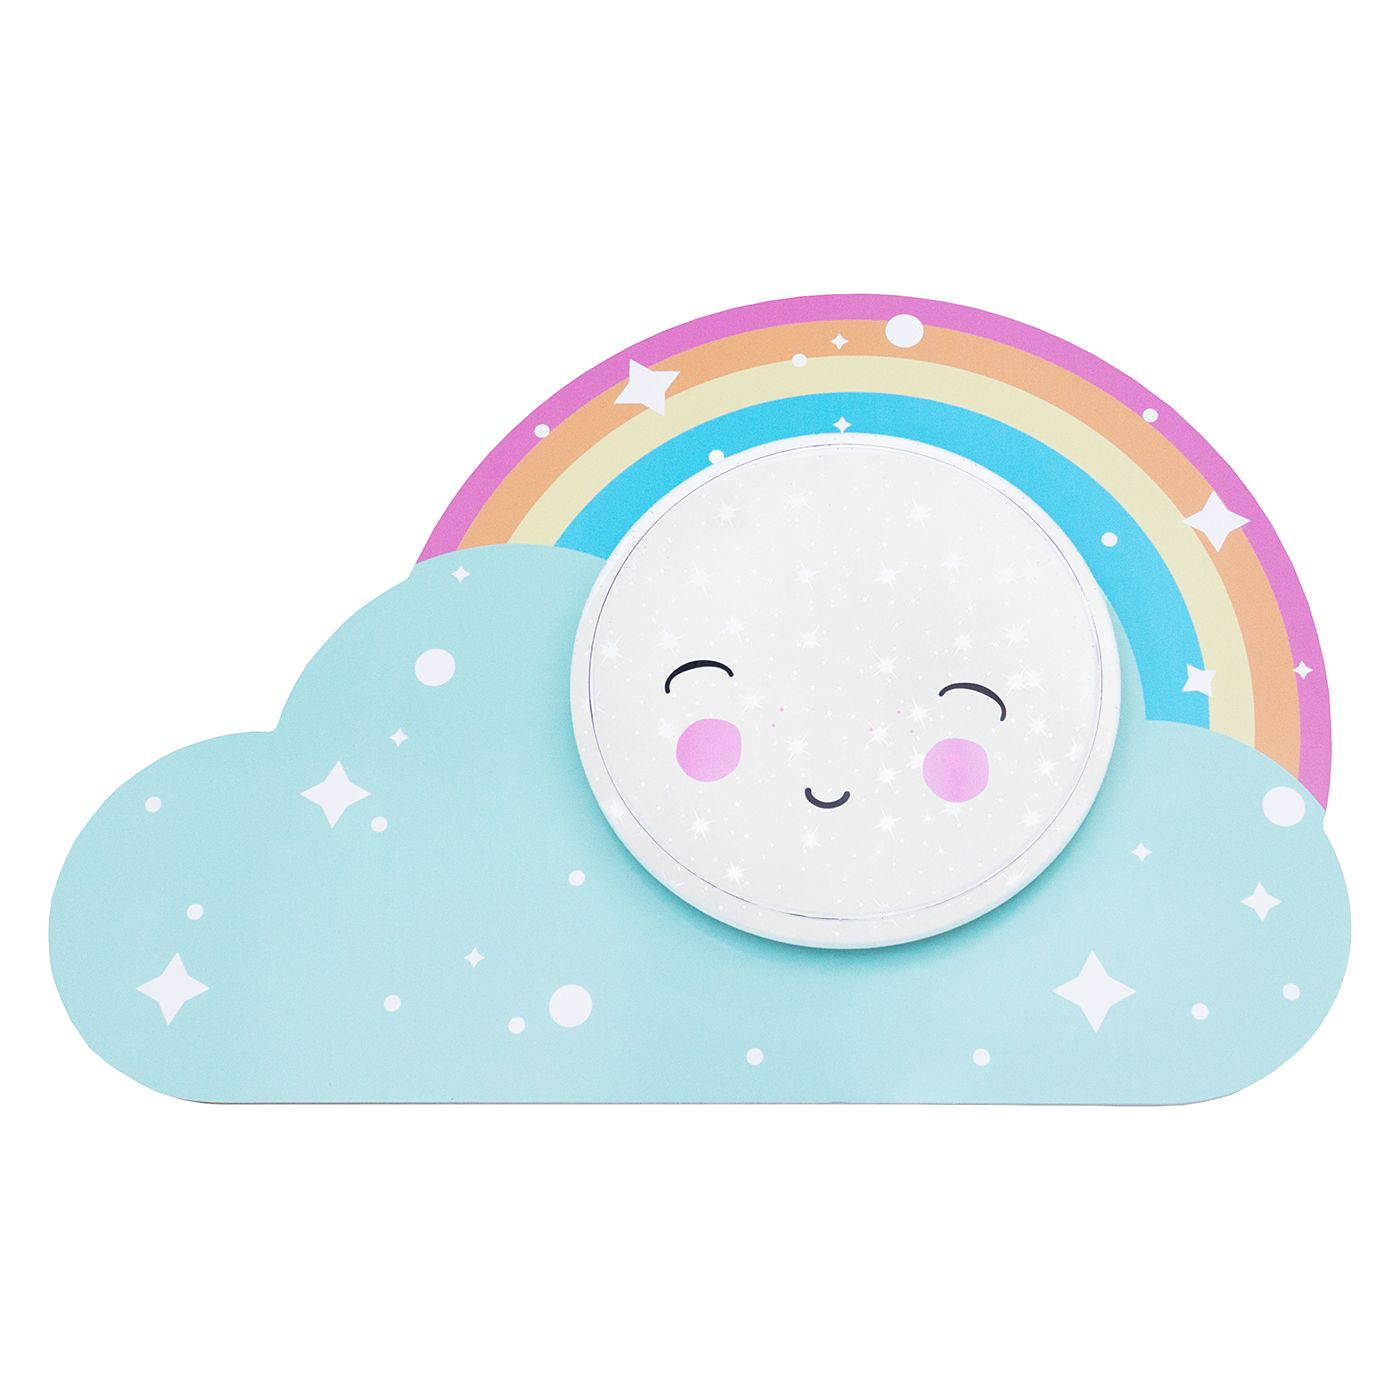 Applique murale Wolke Rainbow